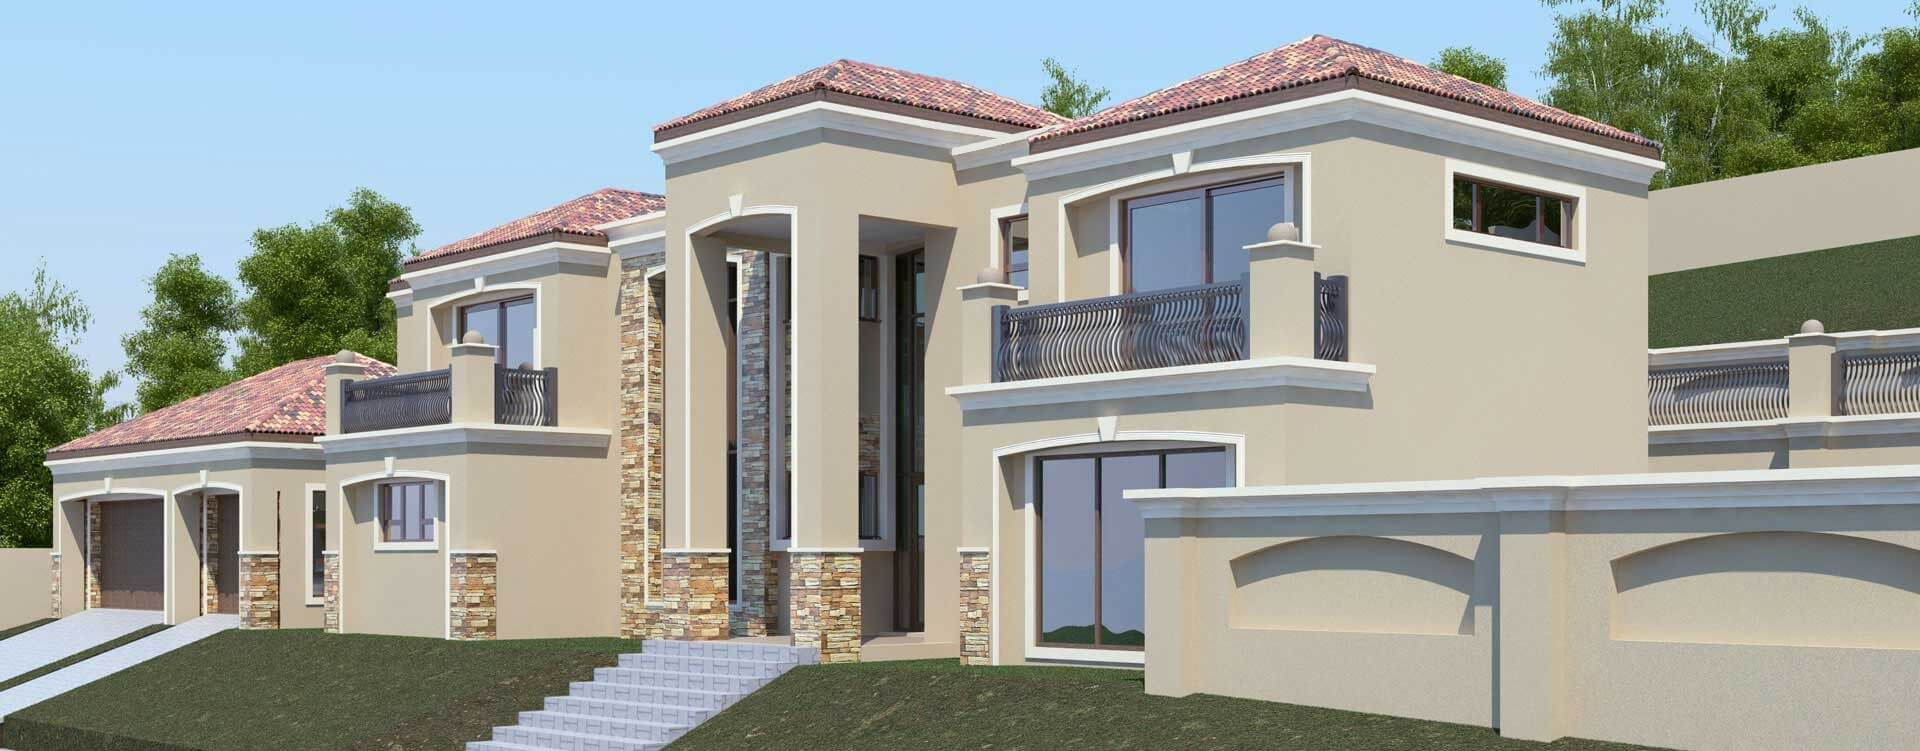 Nethouseplans affordable house plans for Homeplan designs